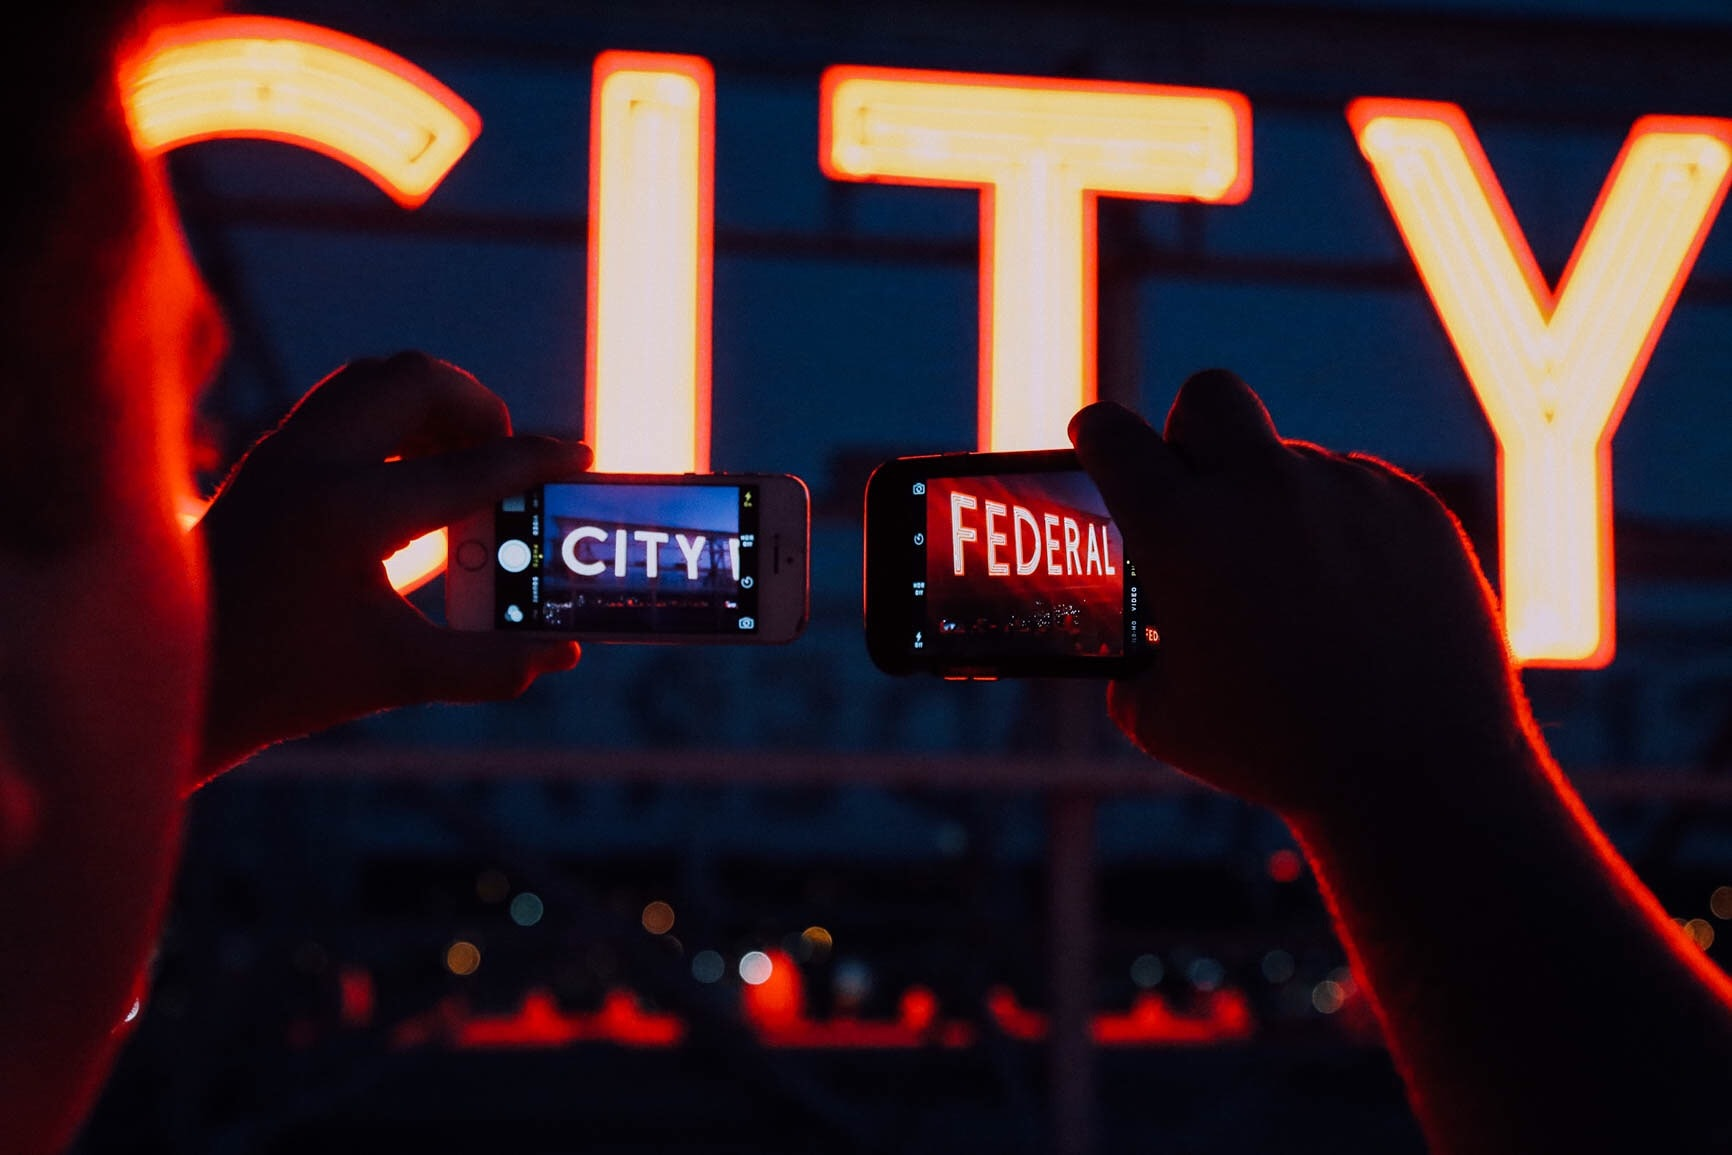 "A man takes the photos of the neon signs ""City"" and ""Federal"" with two phones."